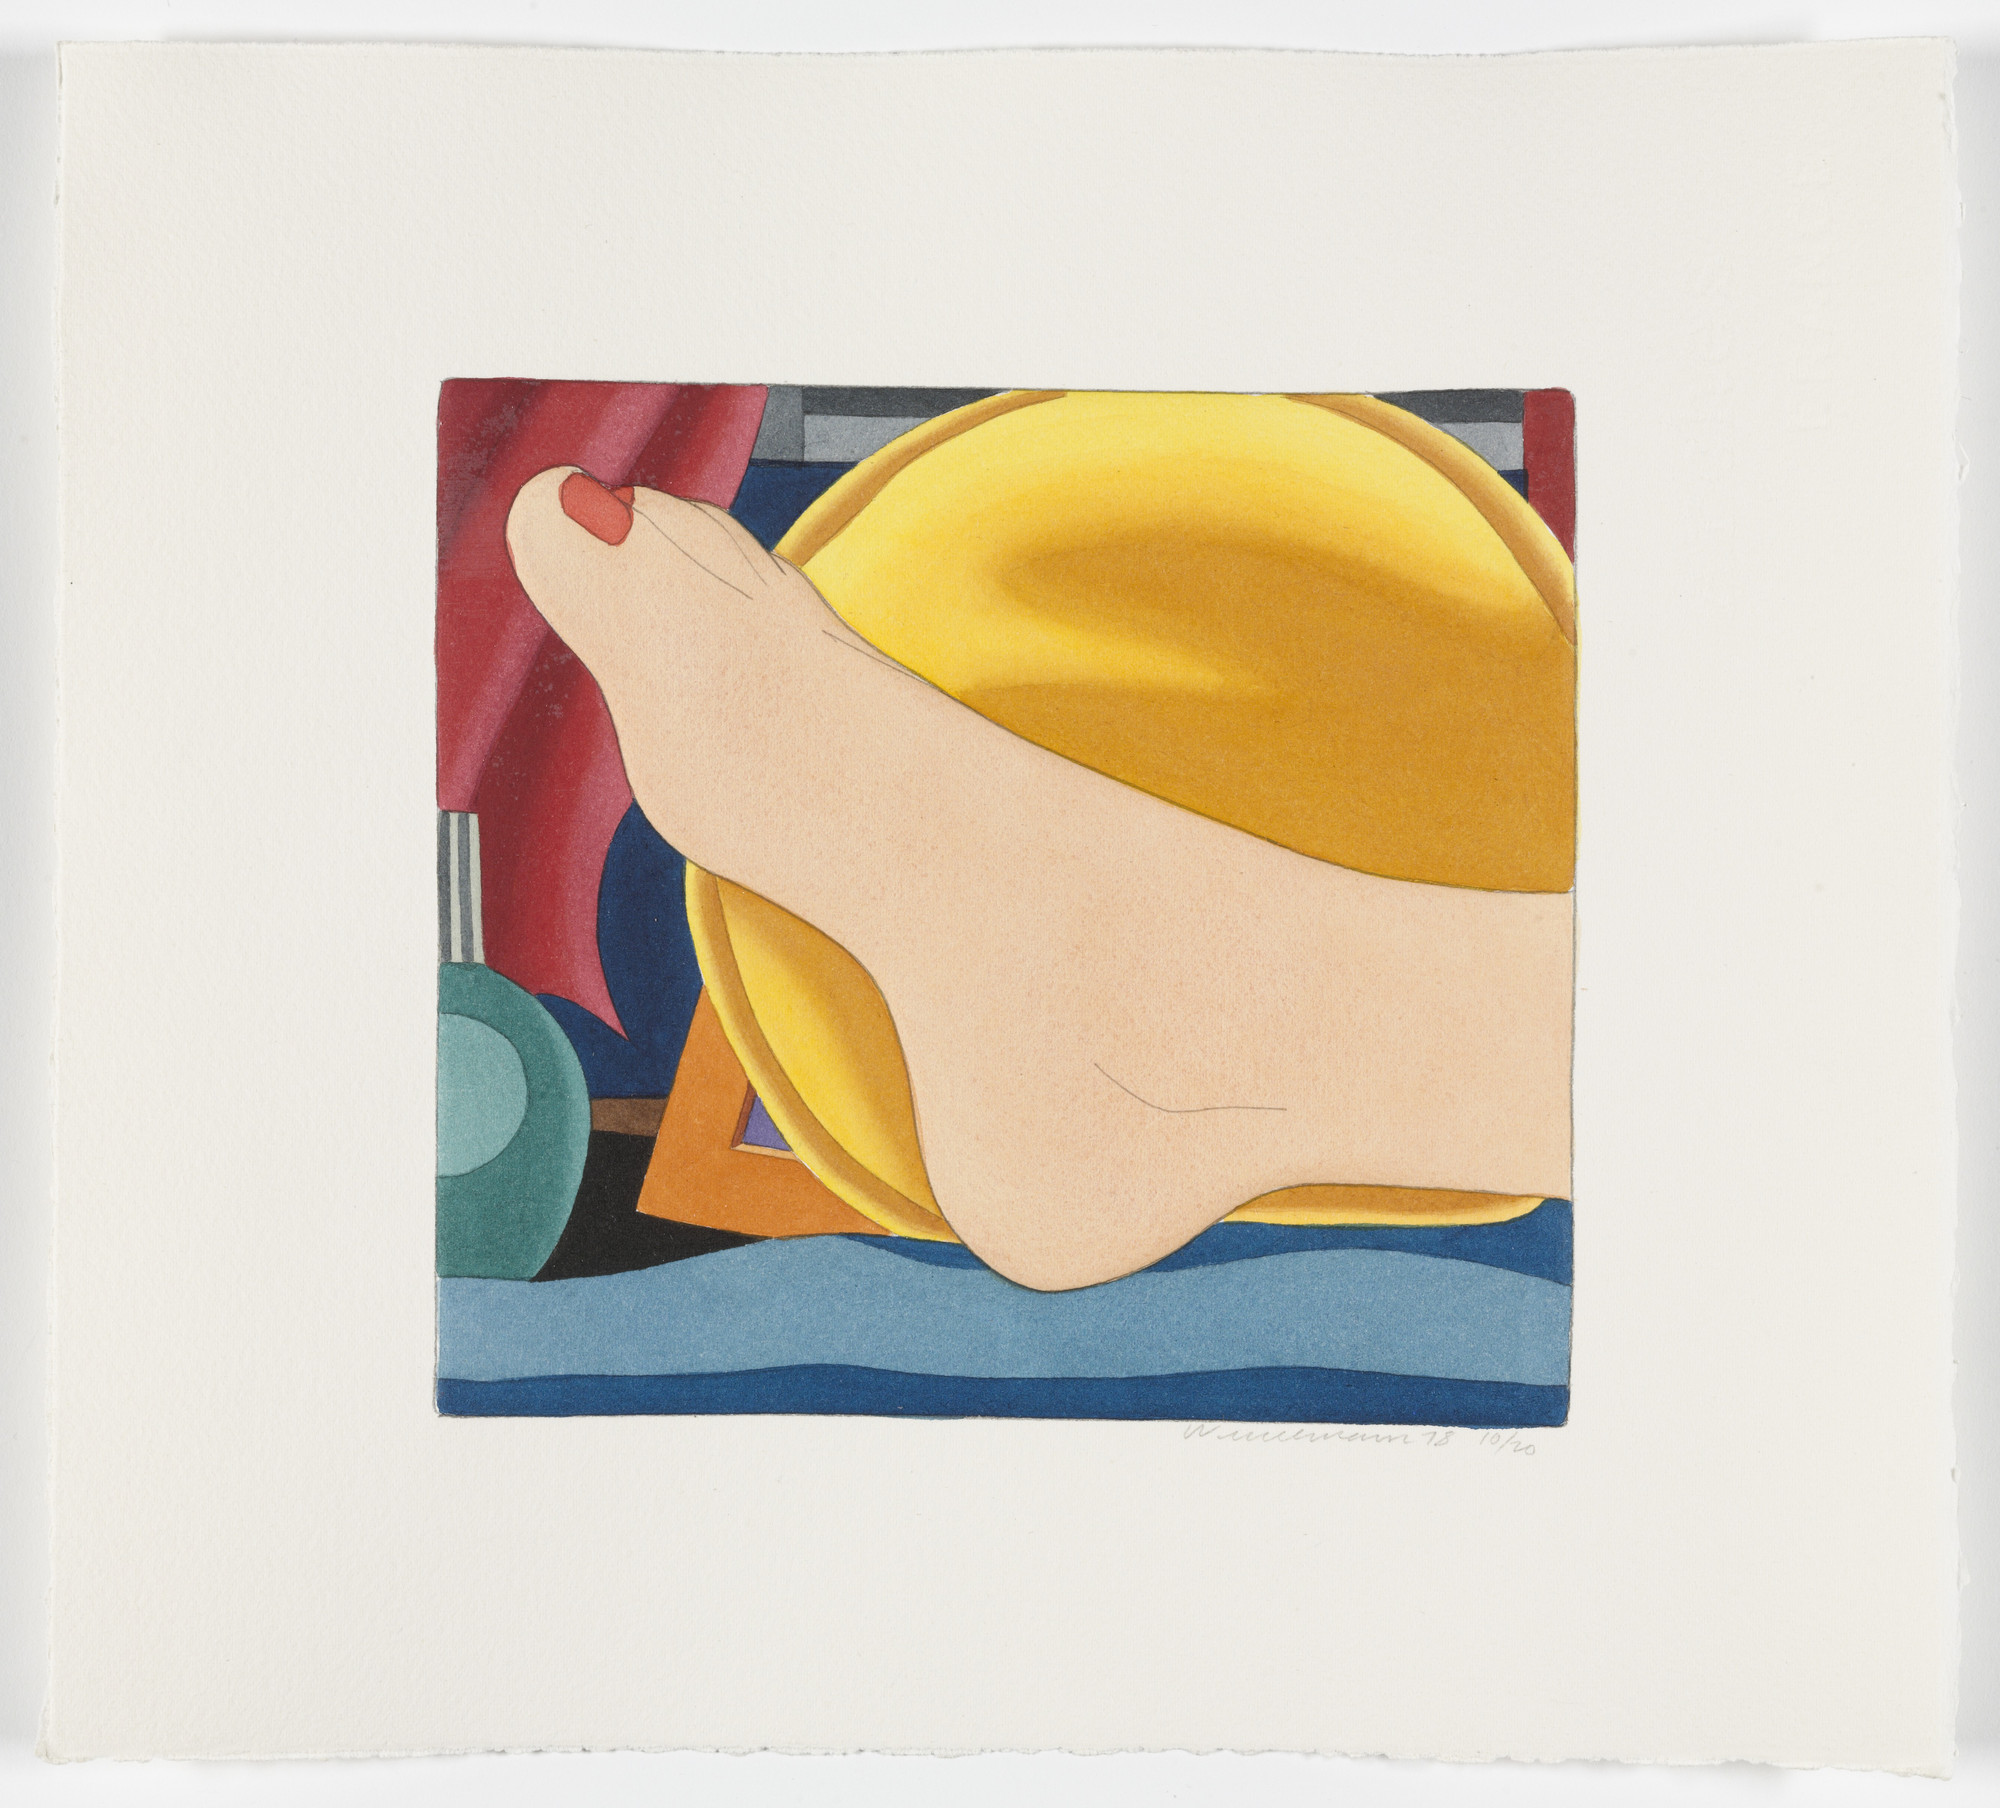 Tom Wesselmann. Untitled from Bedroom Portfolio. 1978-1979